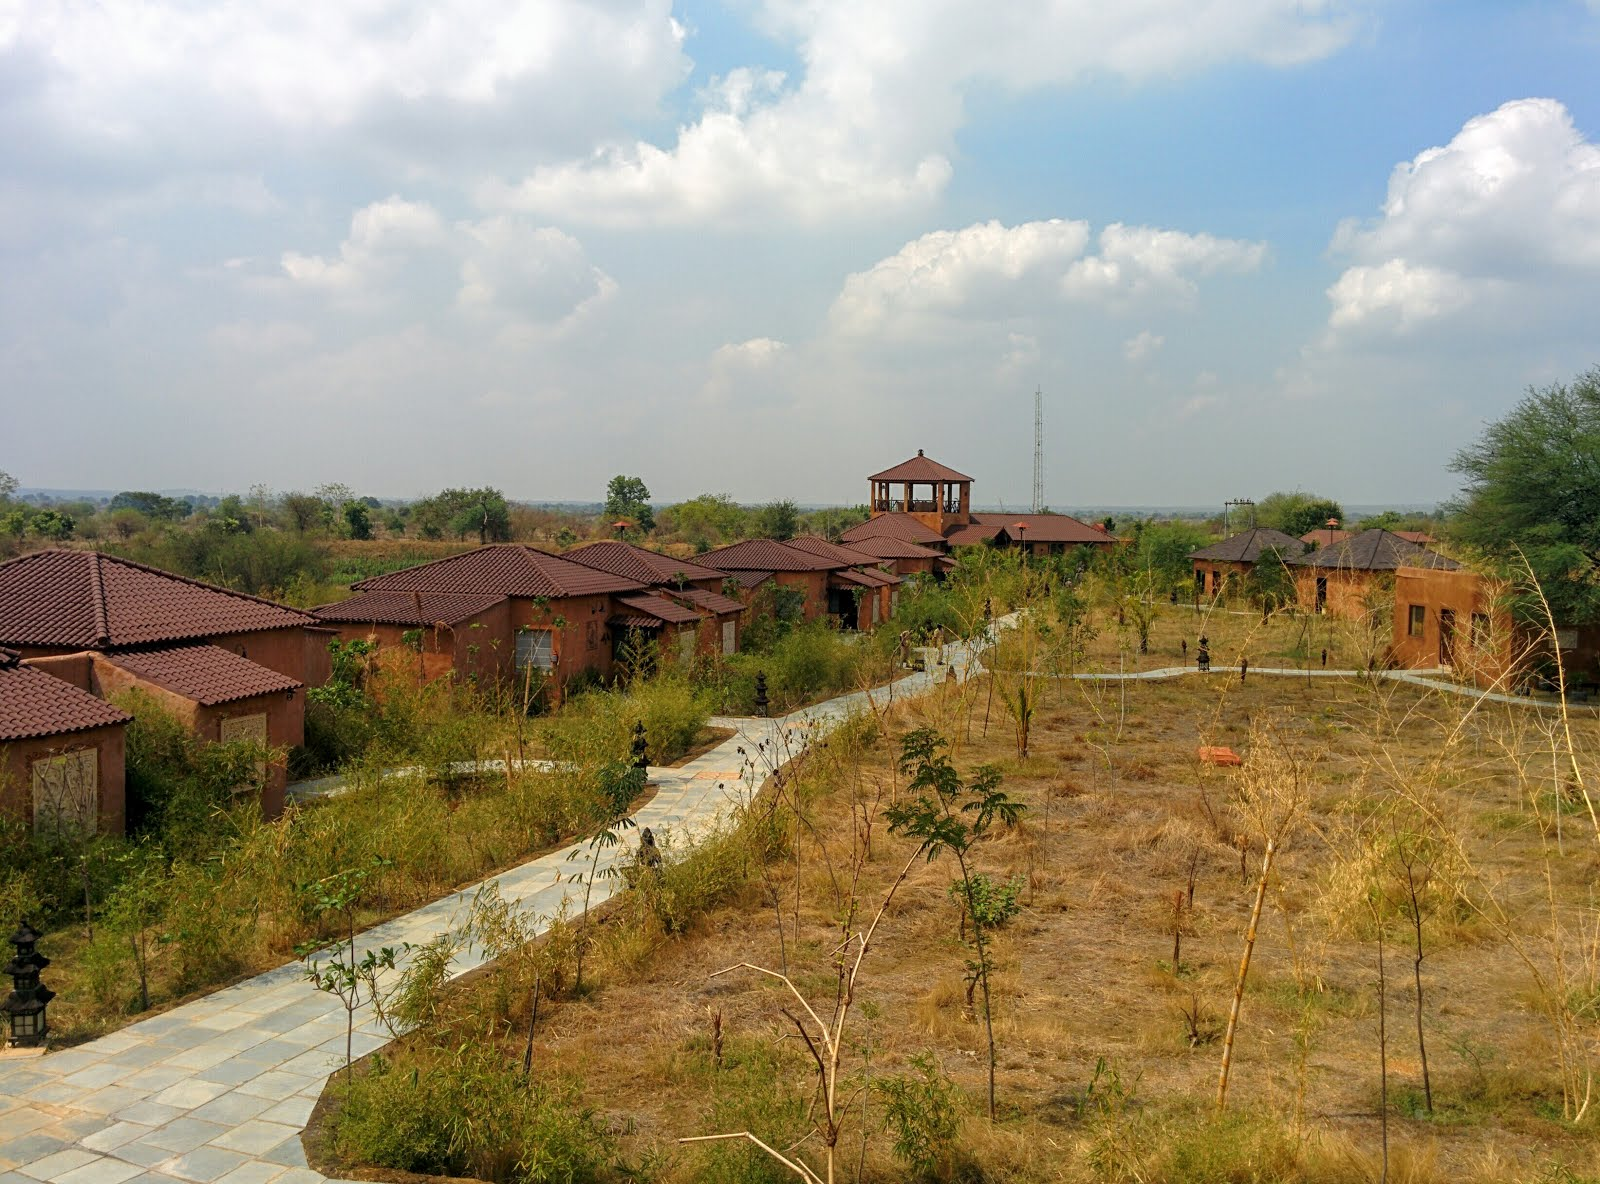 Bamboo Forest Safari Lodge - Tadoba Andhari Tiger Reserve